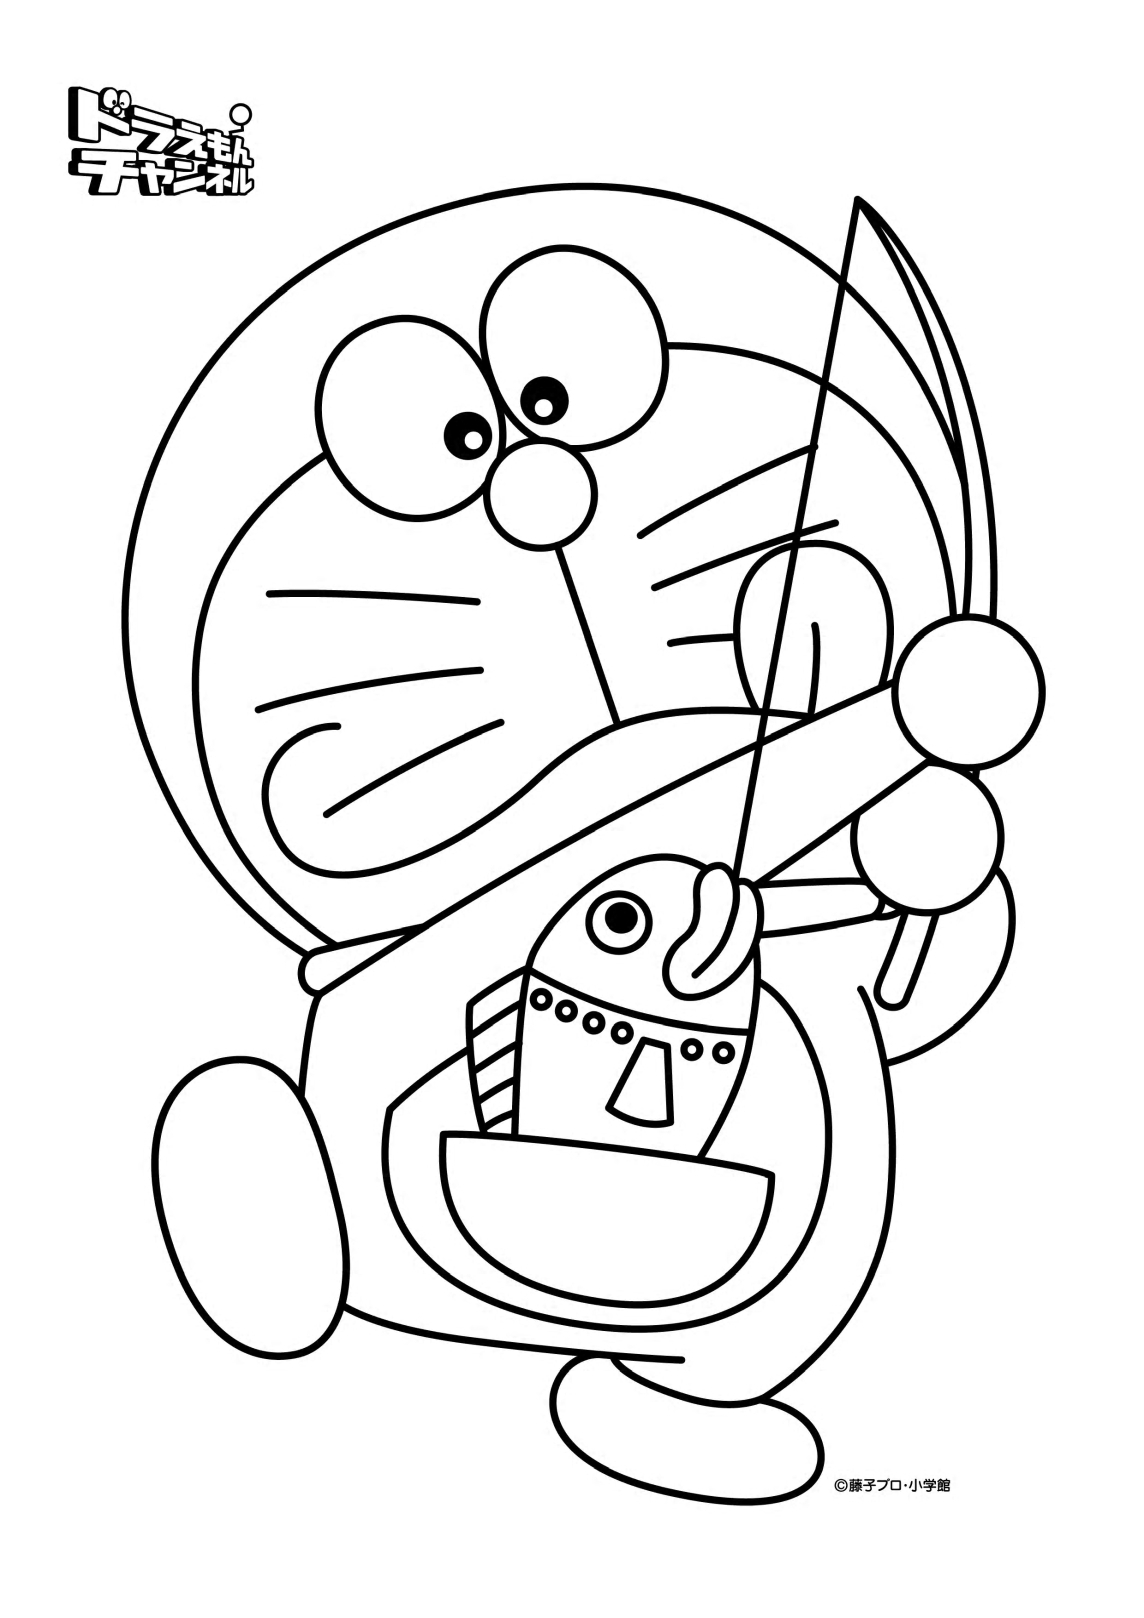 Doraemon Catching Fish Coloring Page